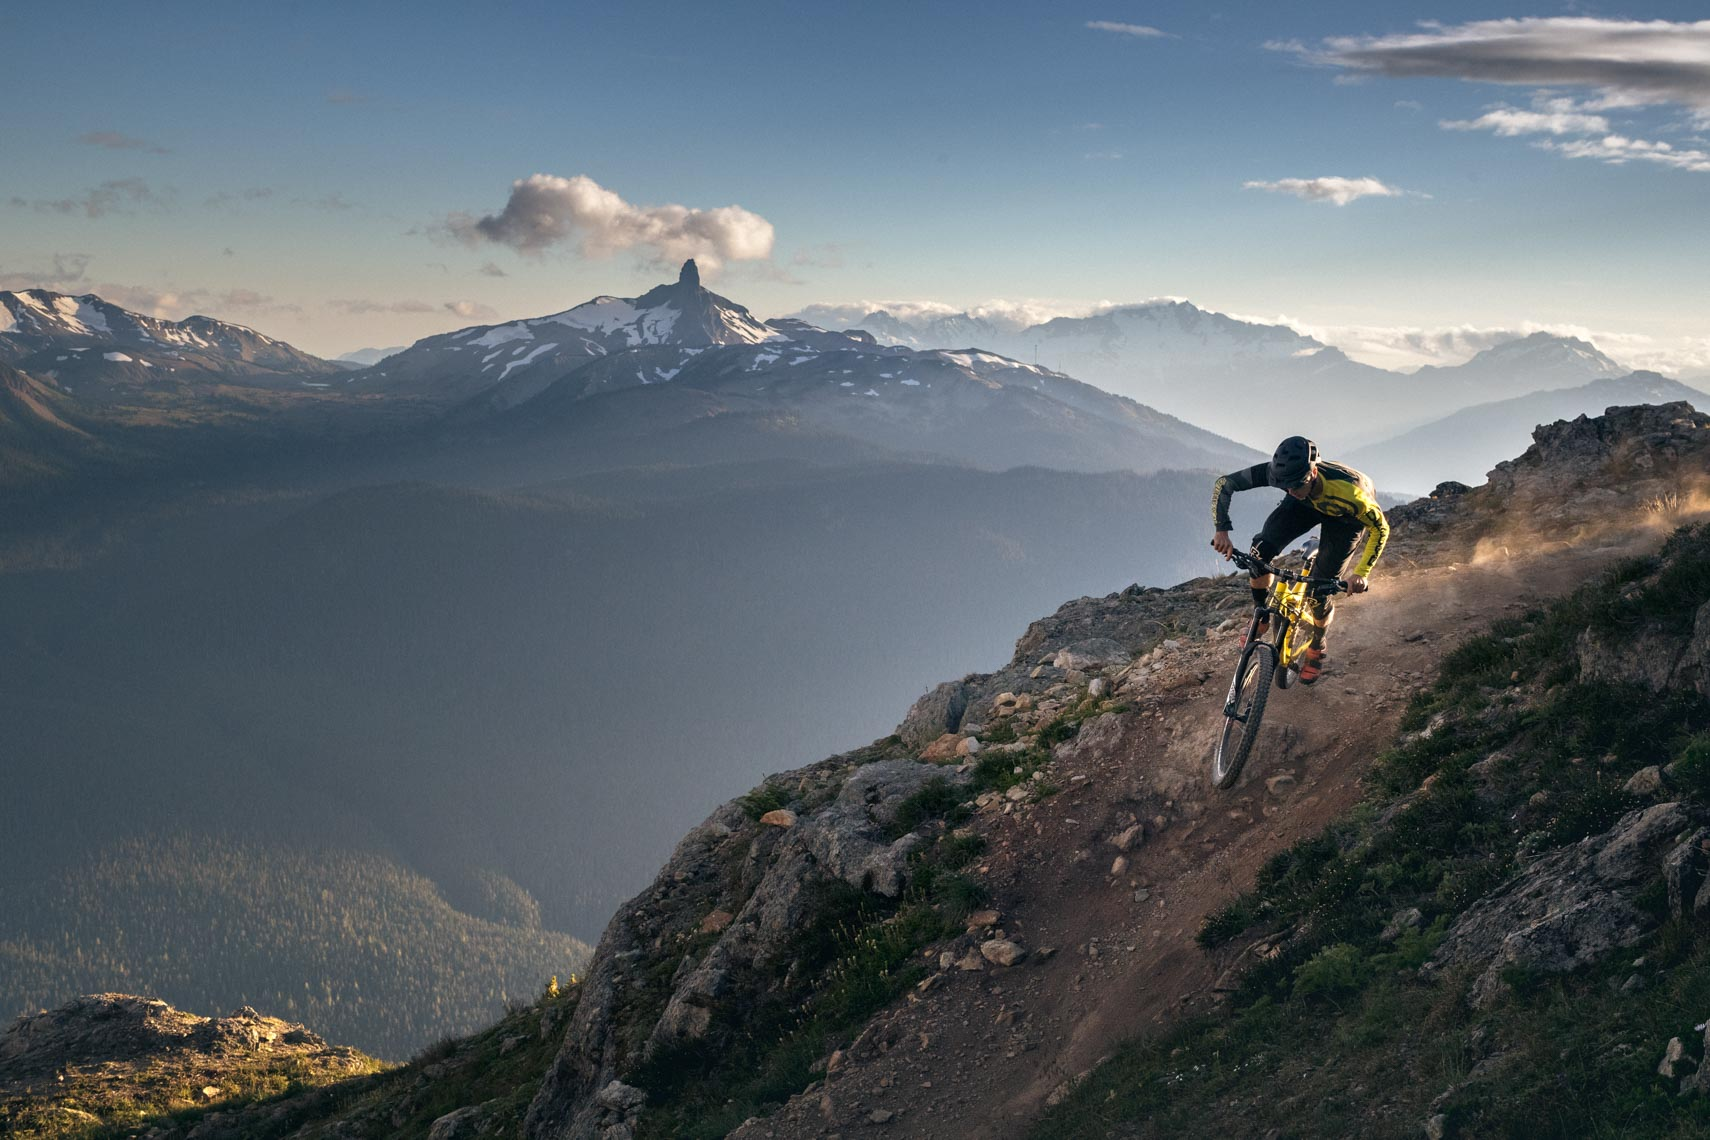 Mountain bike pro athlete in Whistler BC mountains with tusk visible.